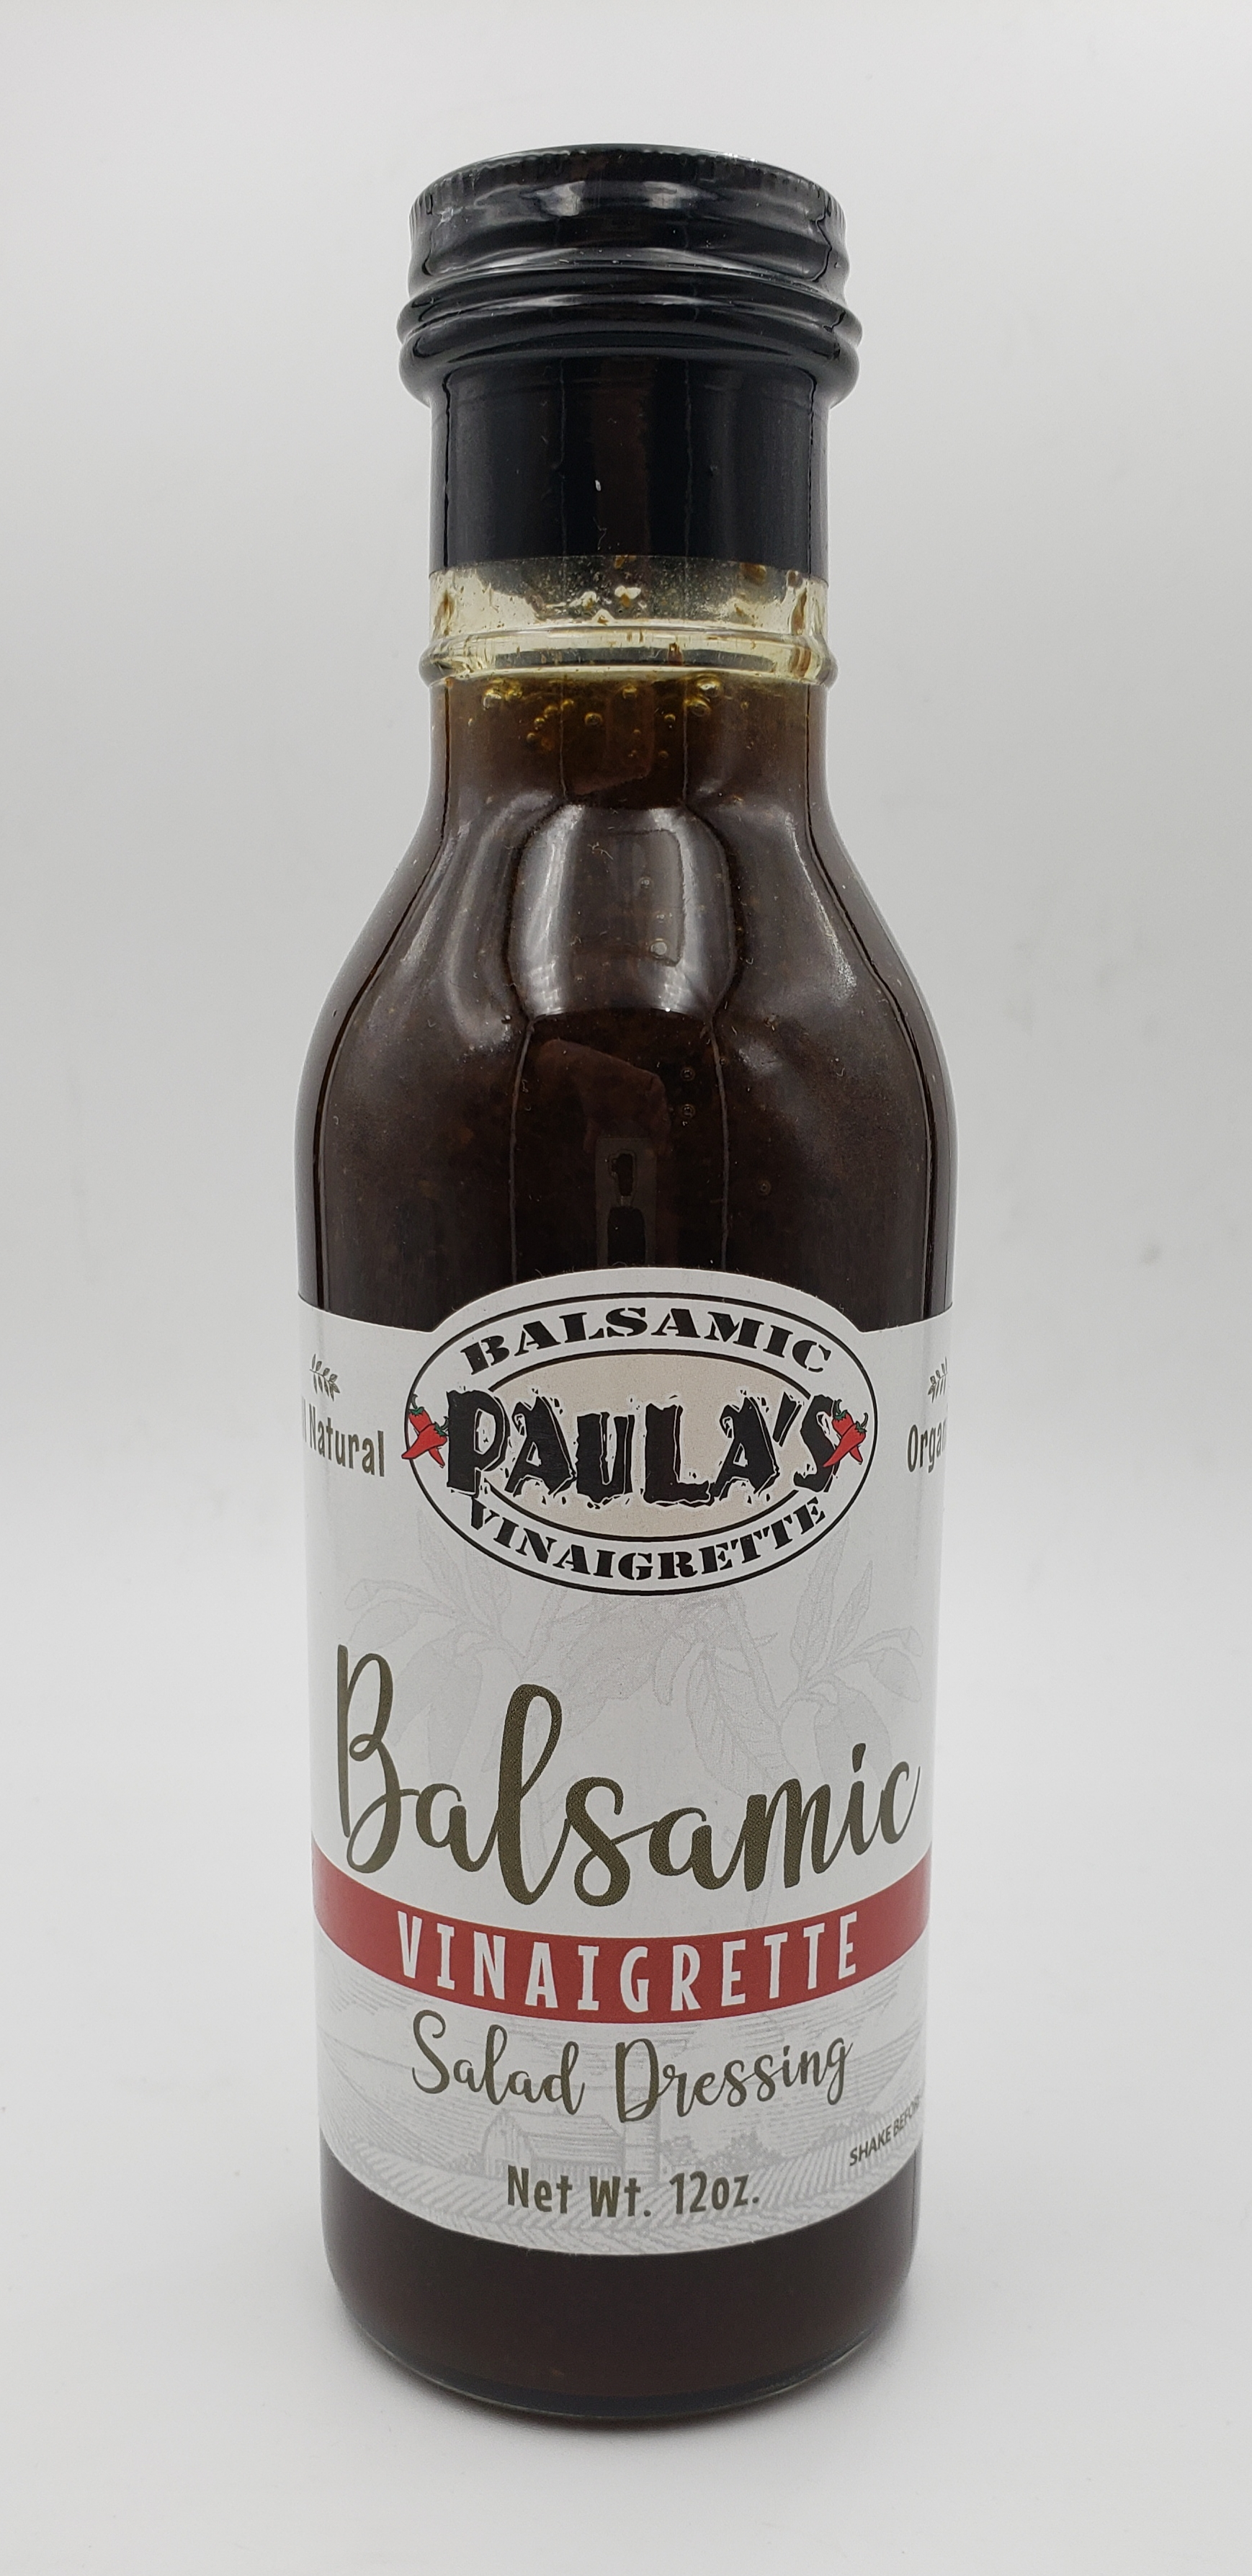 12 oz. bottle of Paula's homemade balsamic vinaigrette salad dressing from Paula's Pepper Jelly with the label facing out.